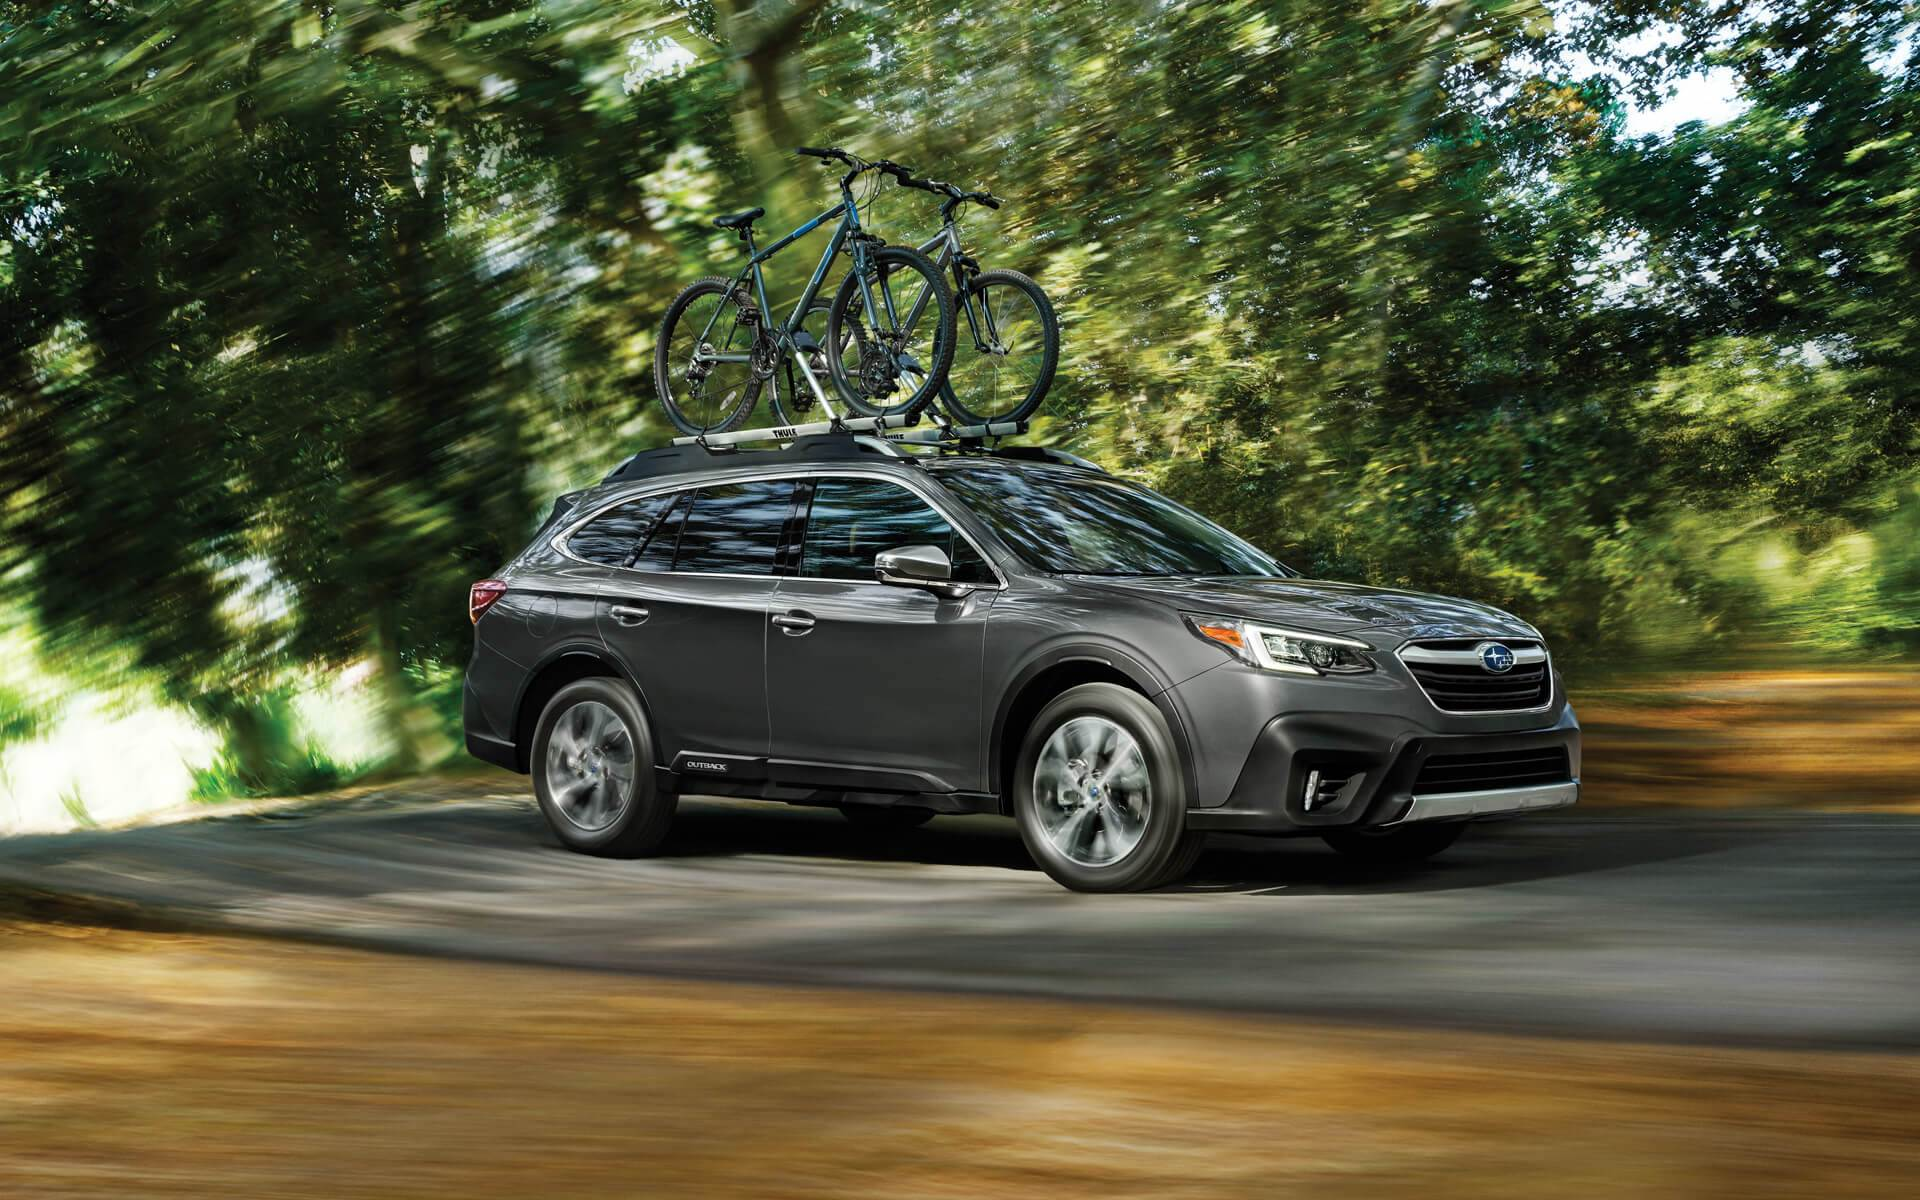 Buy, Lease, or Finance the 2020 Subaru Outback near Pinecliffe CO